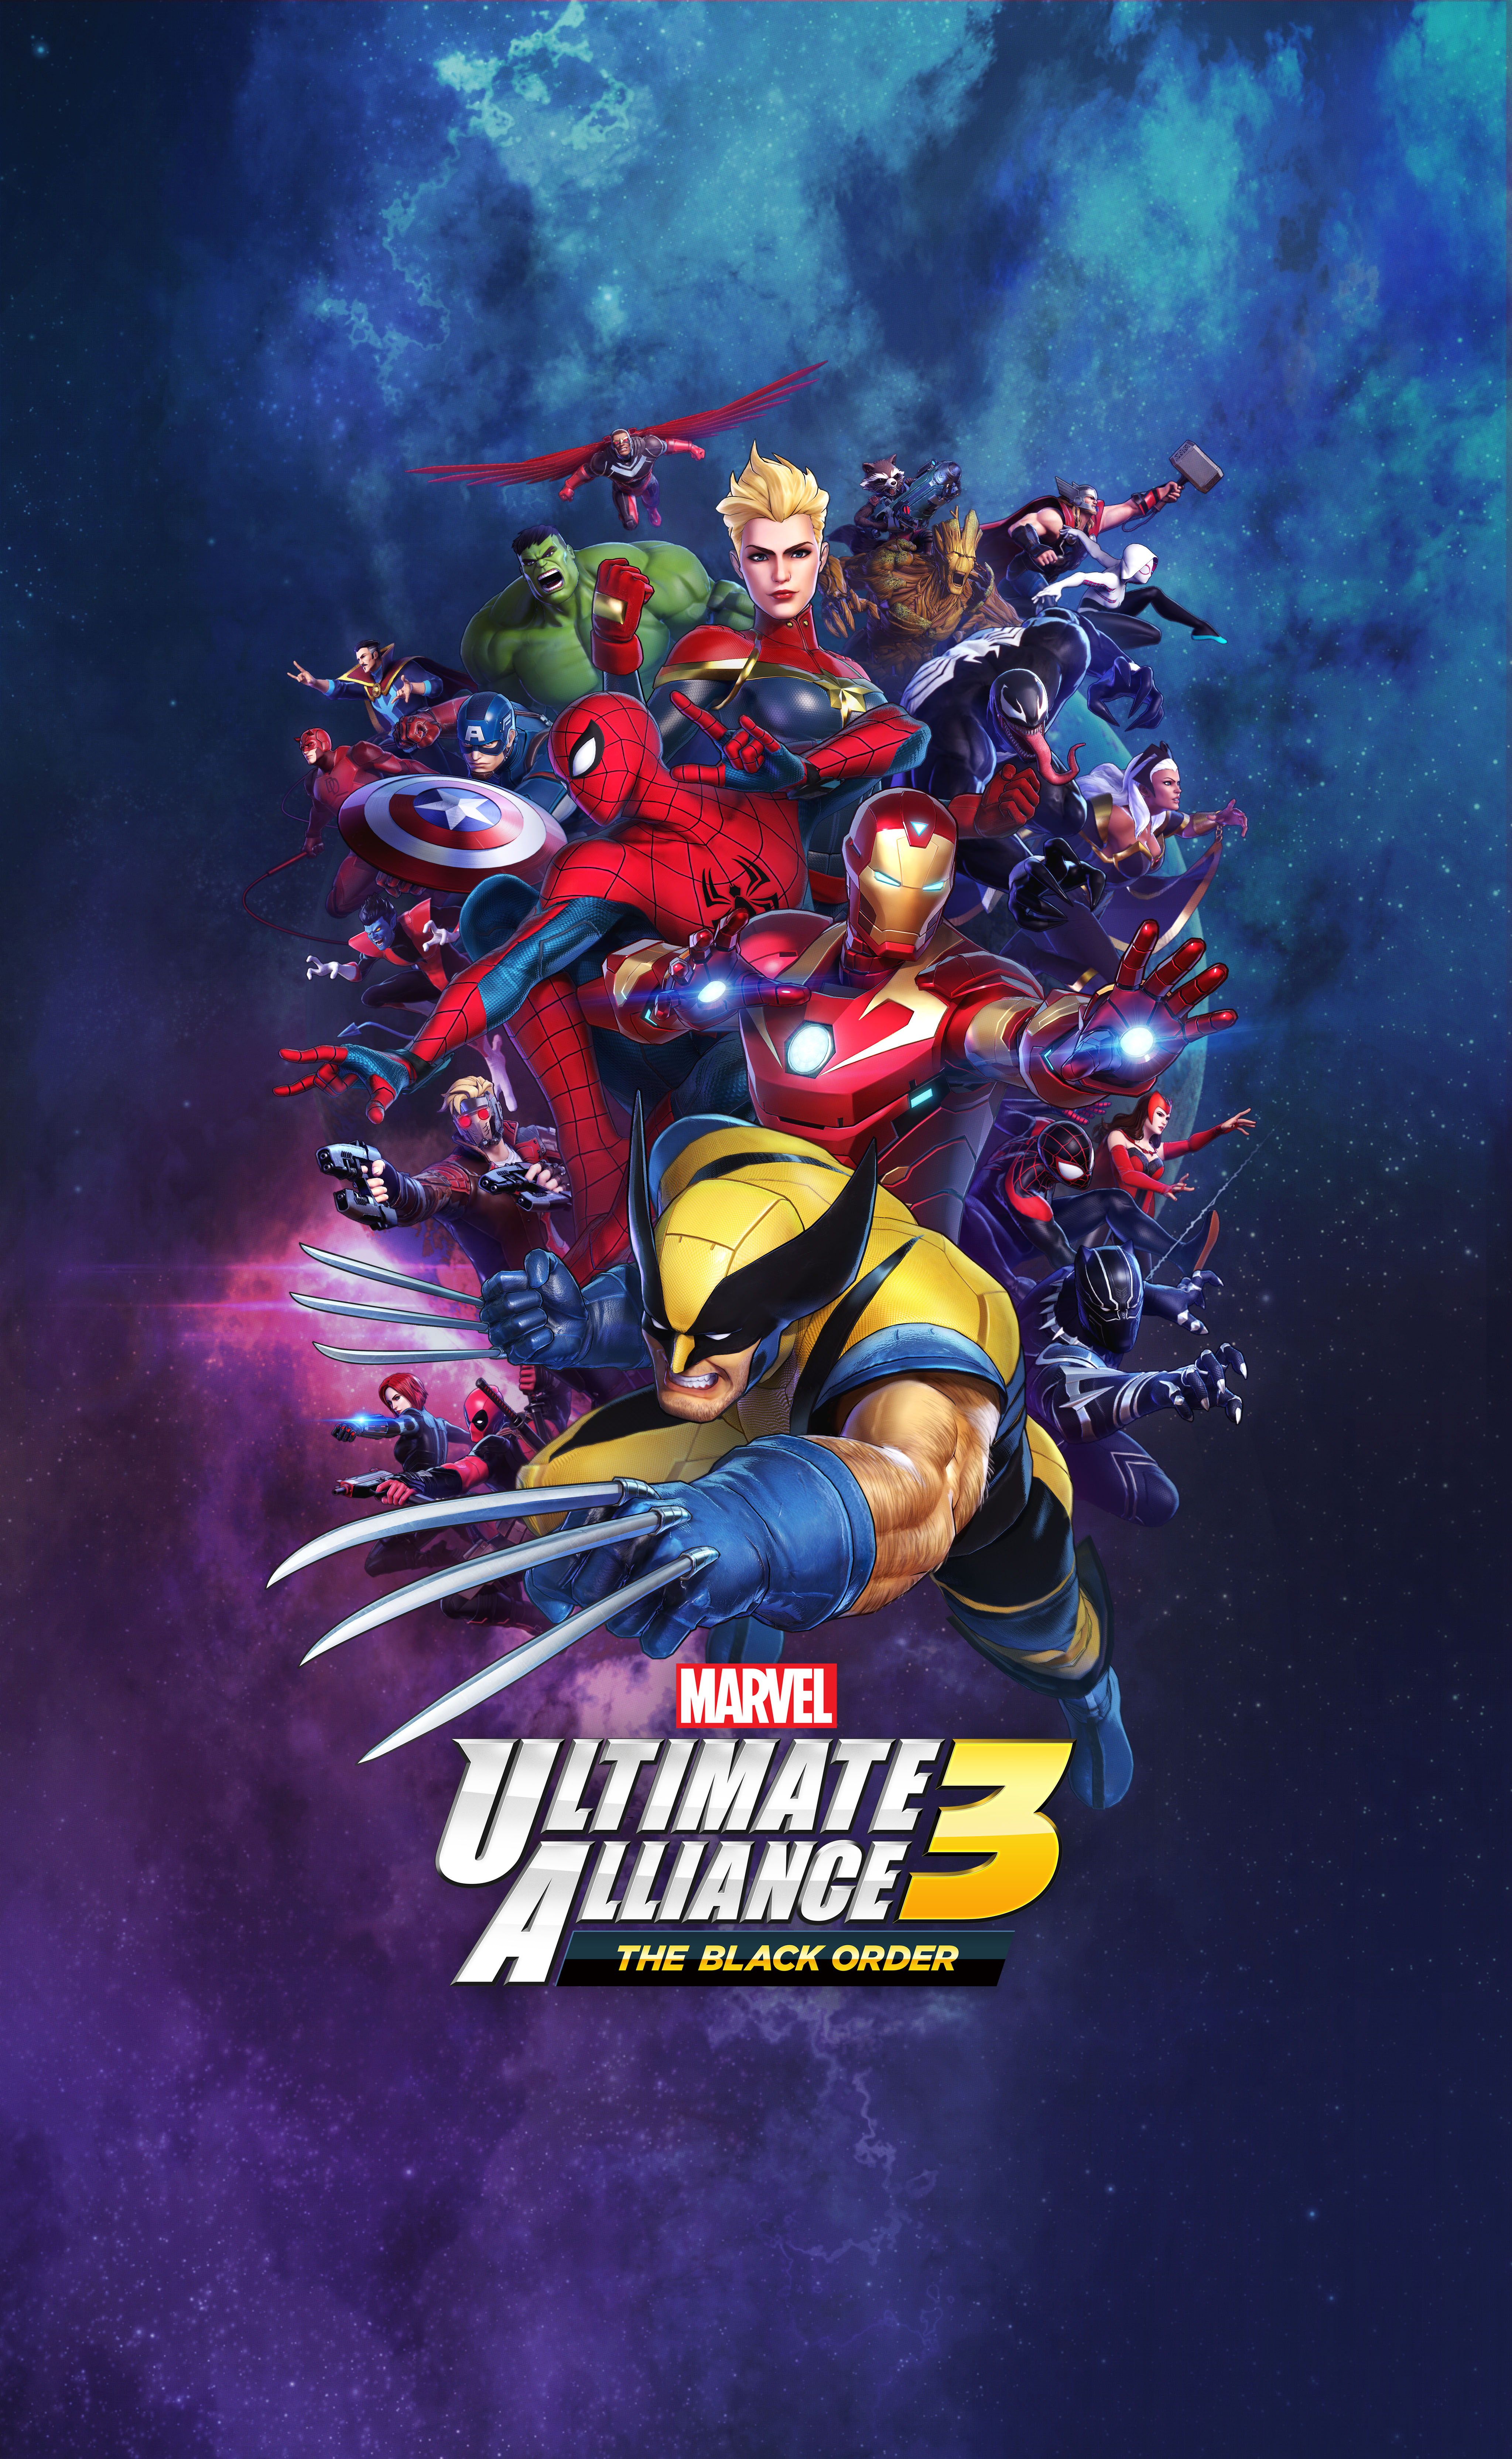 'Marvel Ultimate Alliance 3' Launching On Nintendo Switch This Summer